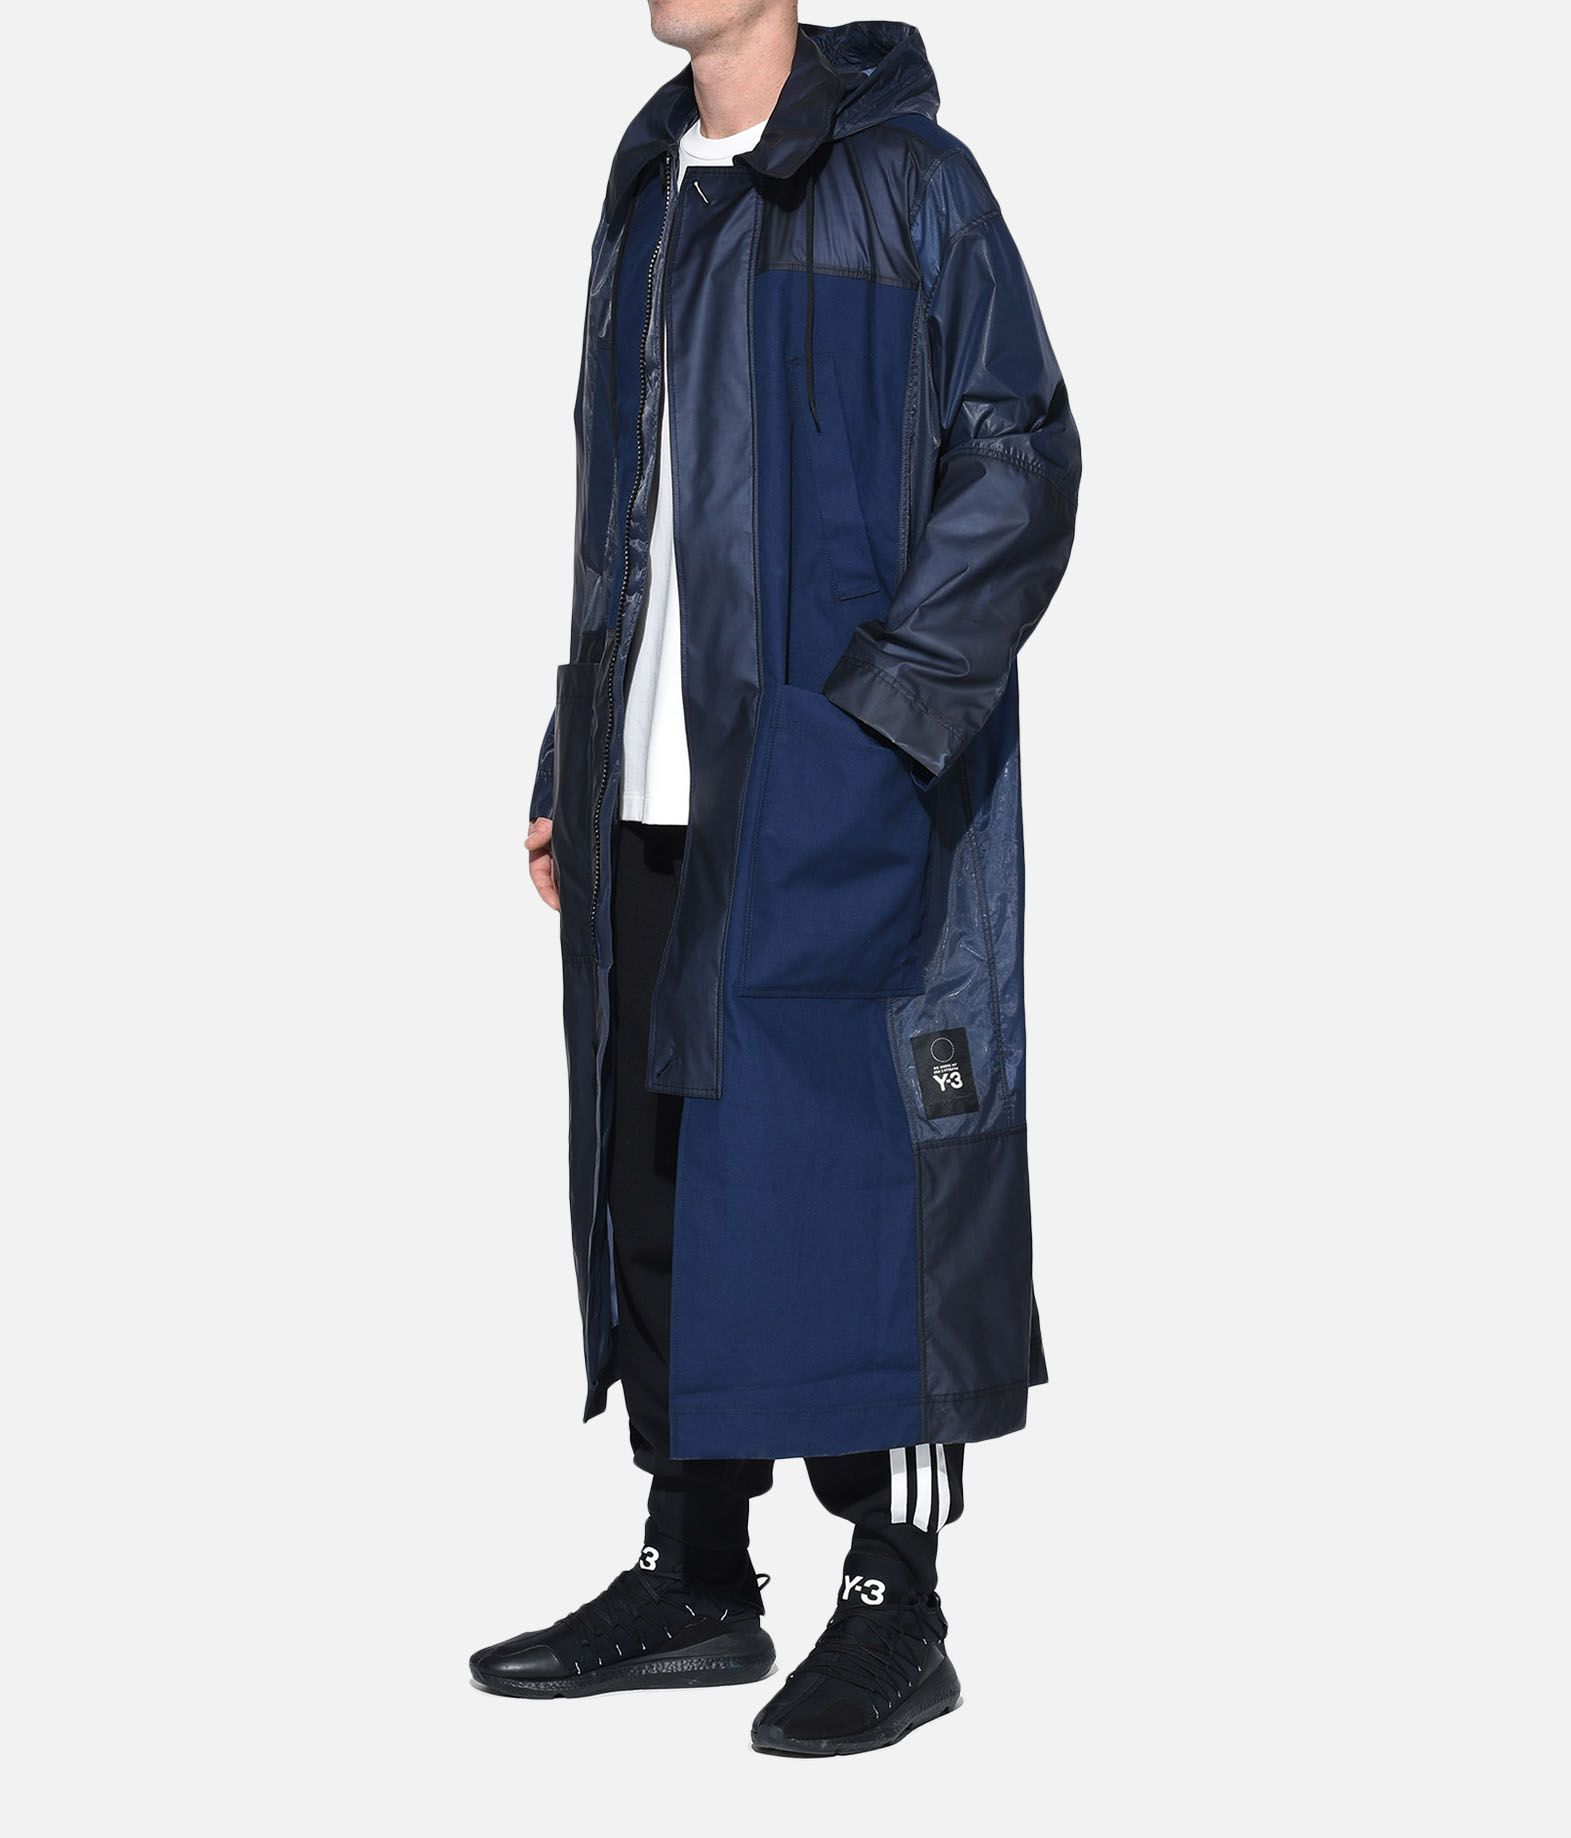 Y-3 Y-3 Patchwork Long Coat Coat Man a